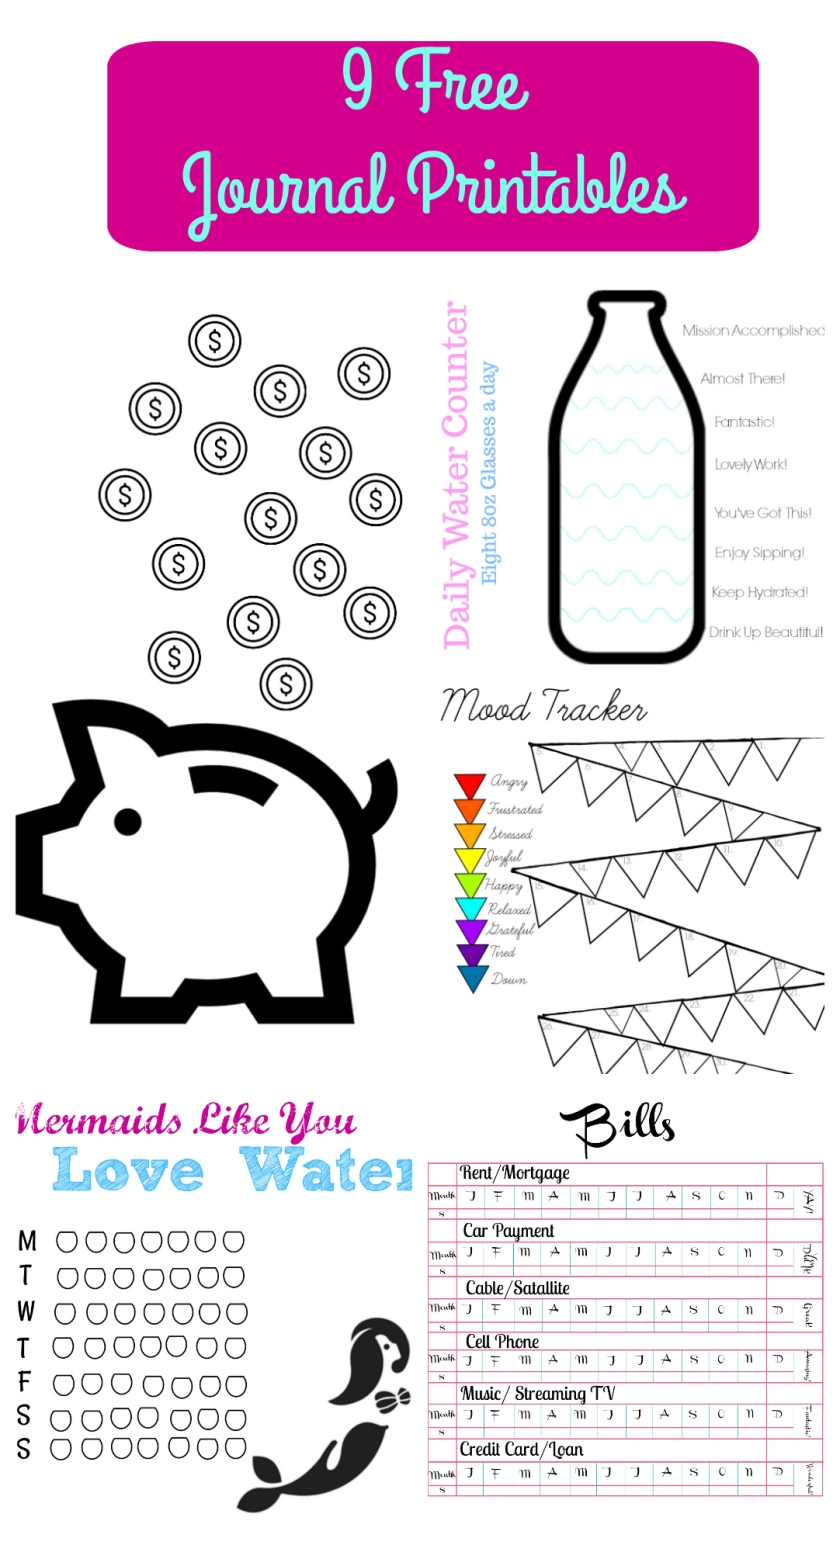 9 Free Journal Printables